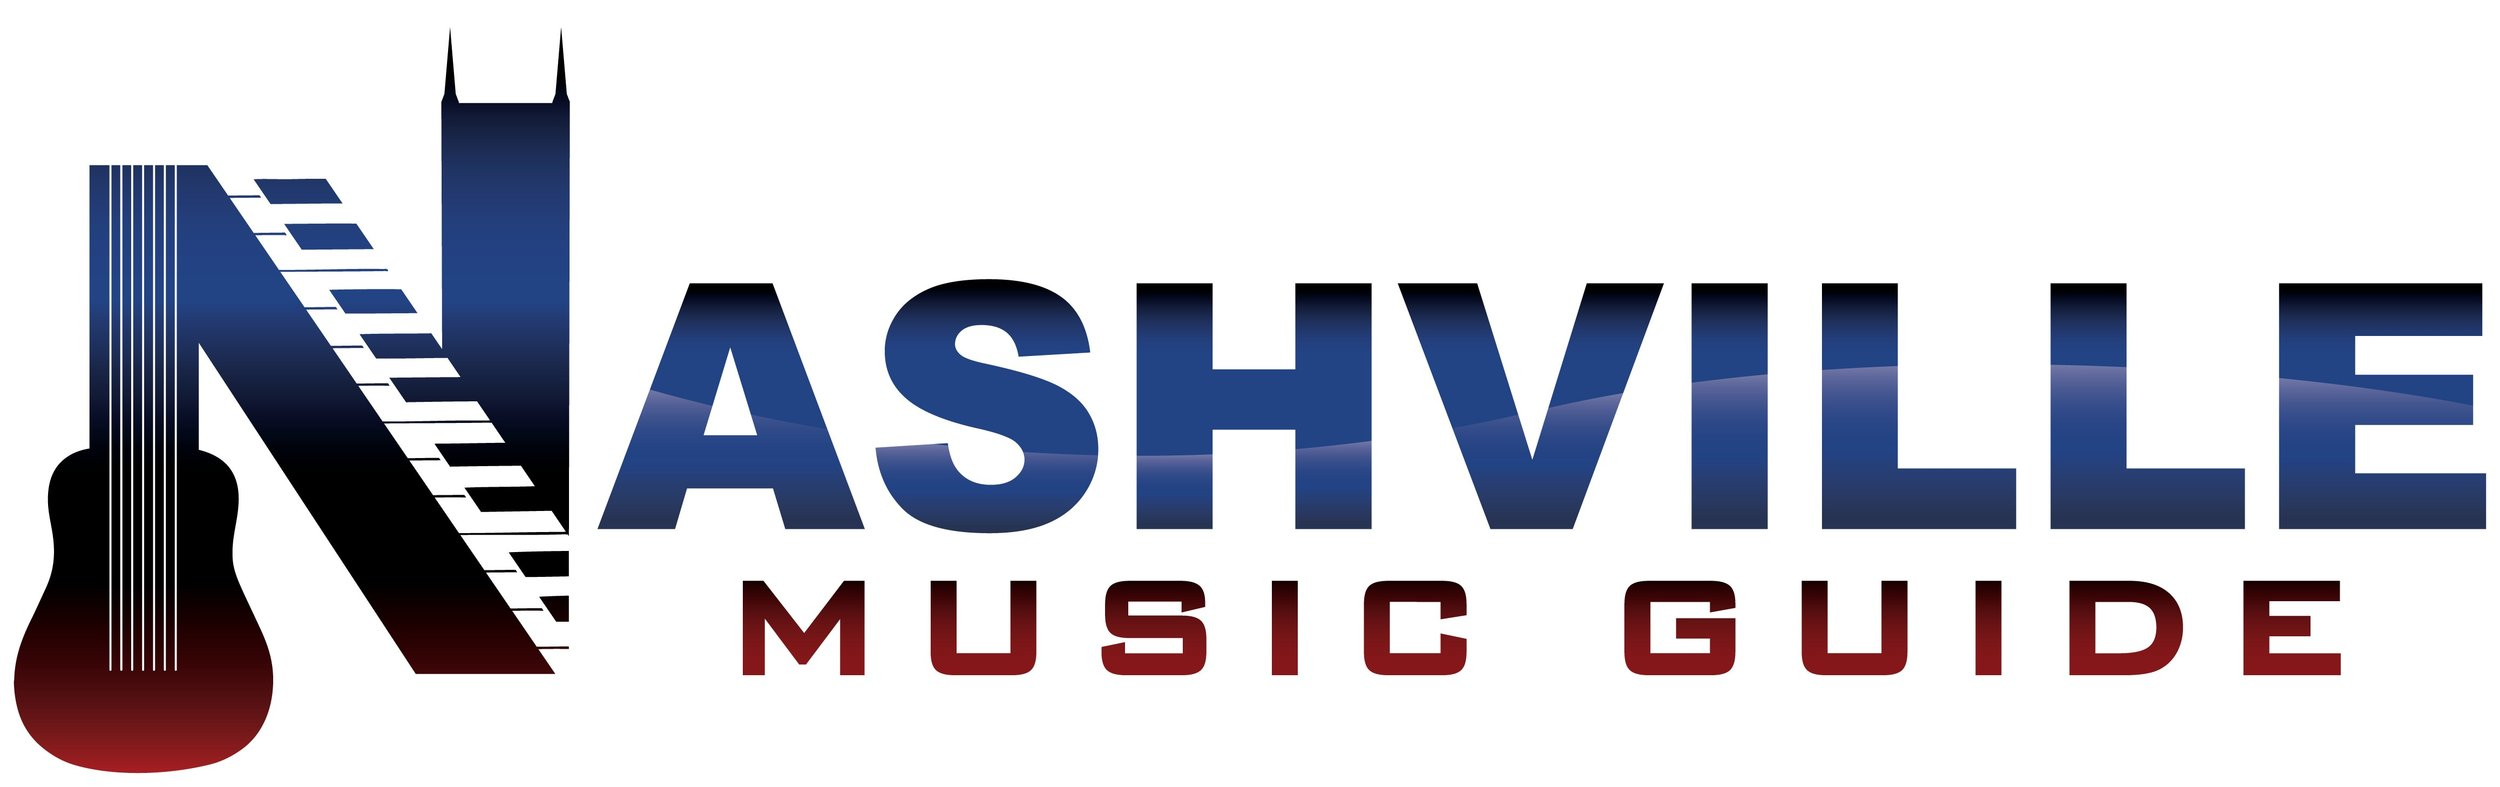 April 30th, 2019 - I did an interview with this awesome site. Follow the link by clicking Nashville Music Guide